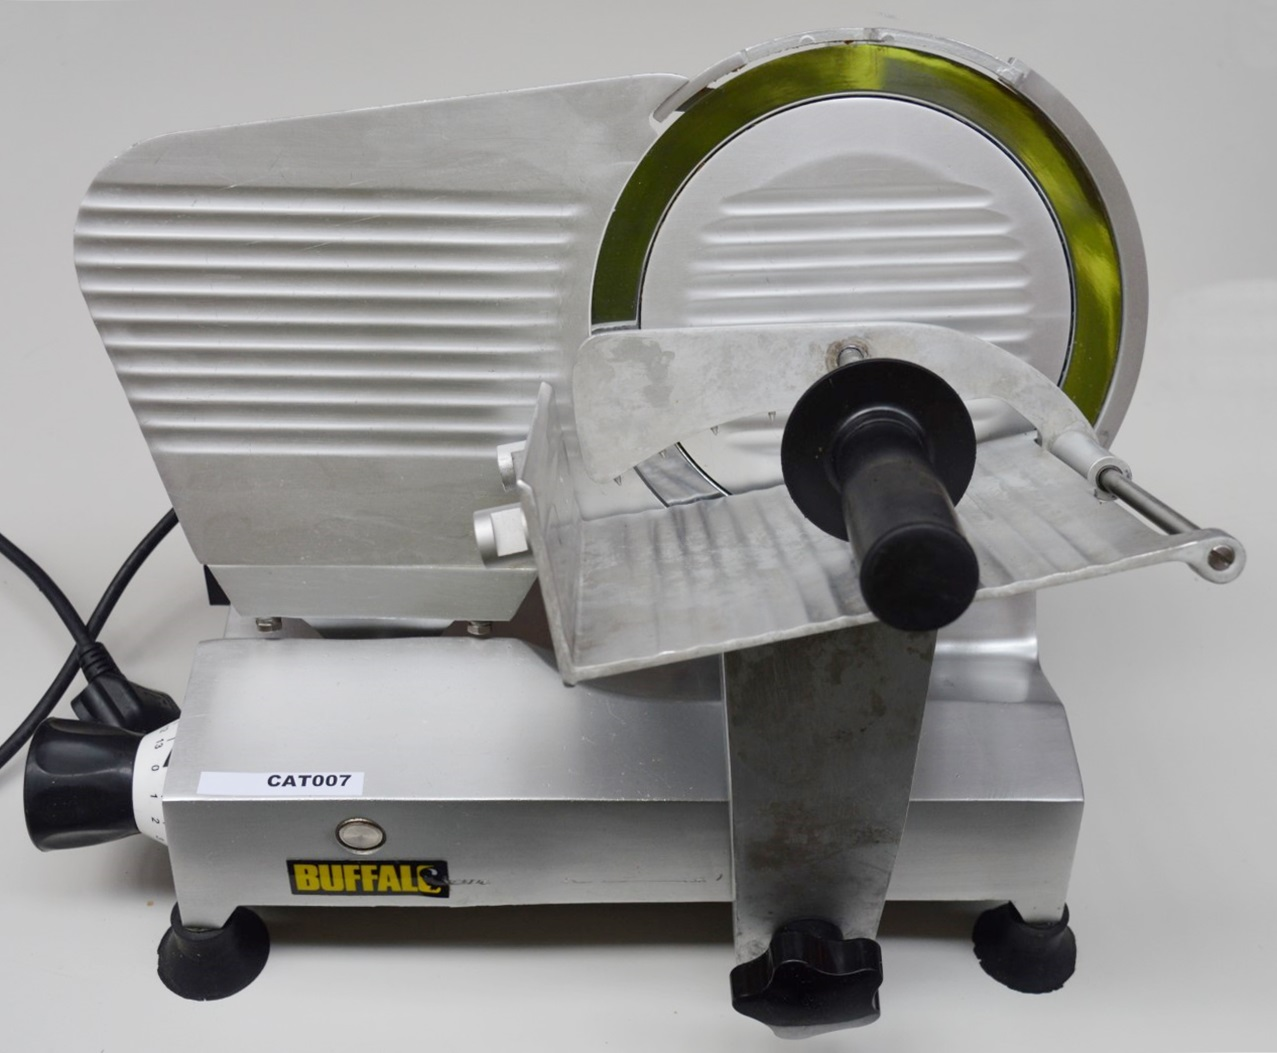 1 X Buffalo Meat Slicer Features Include 120w Motor